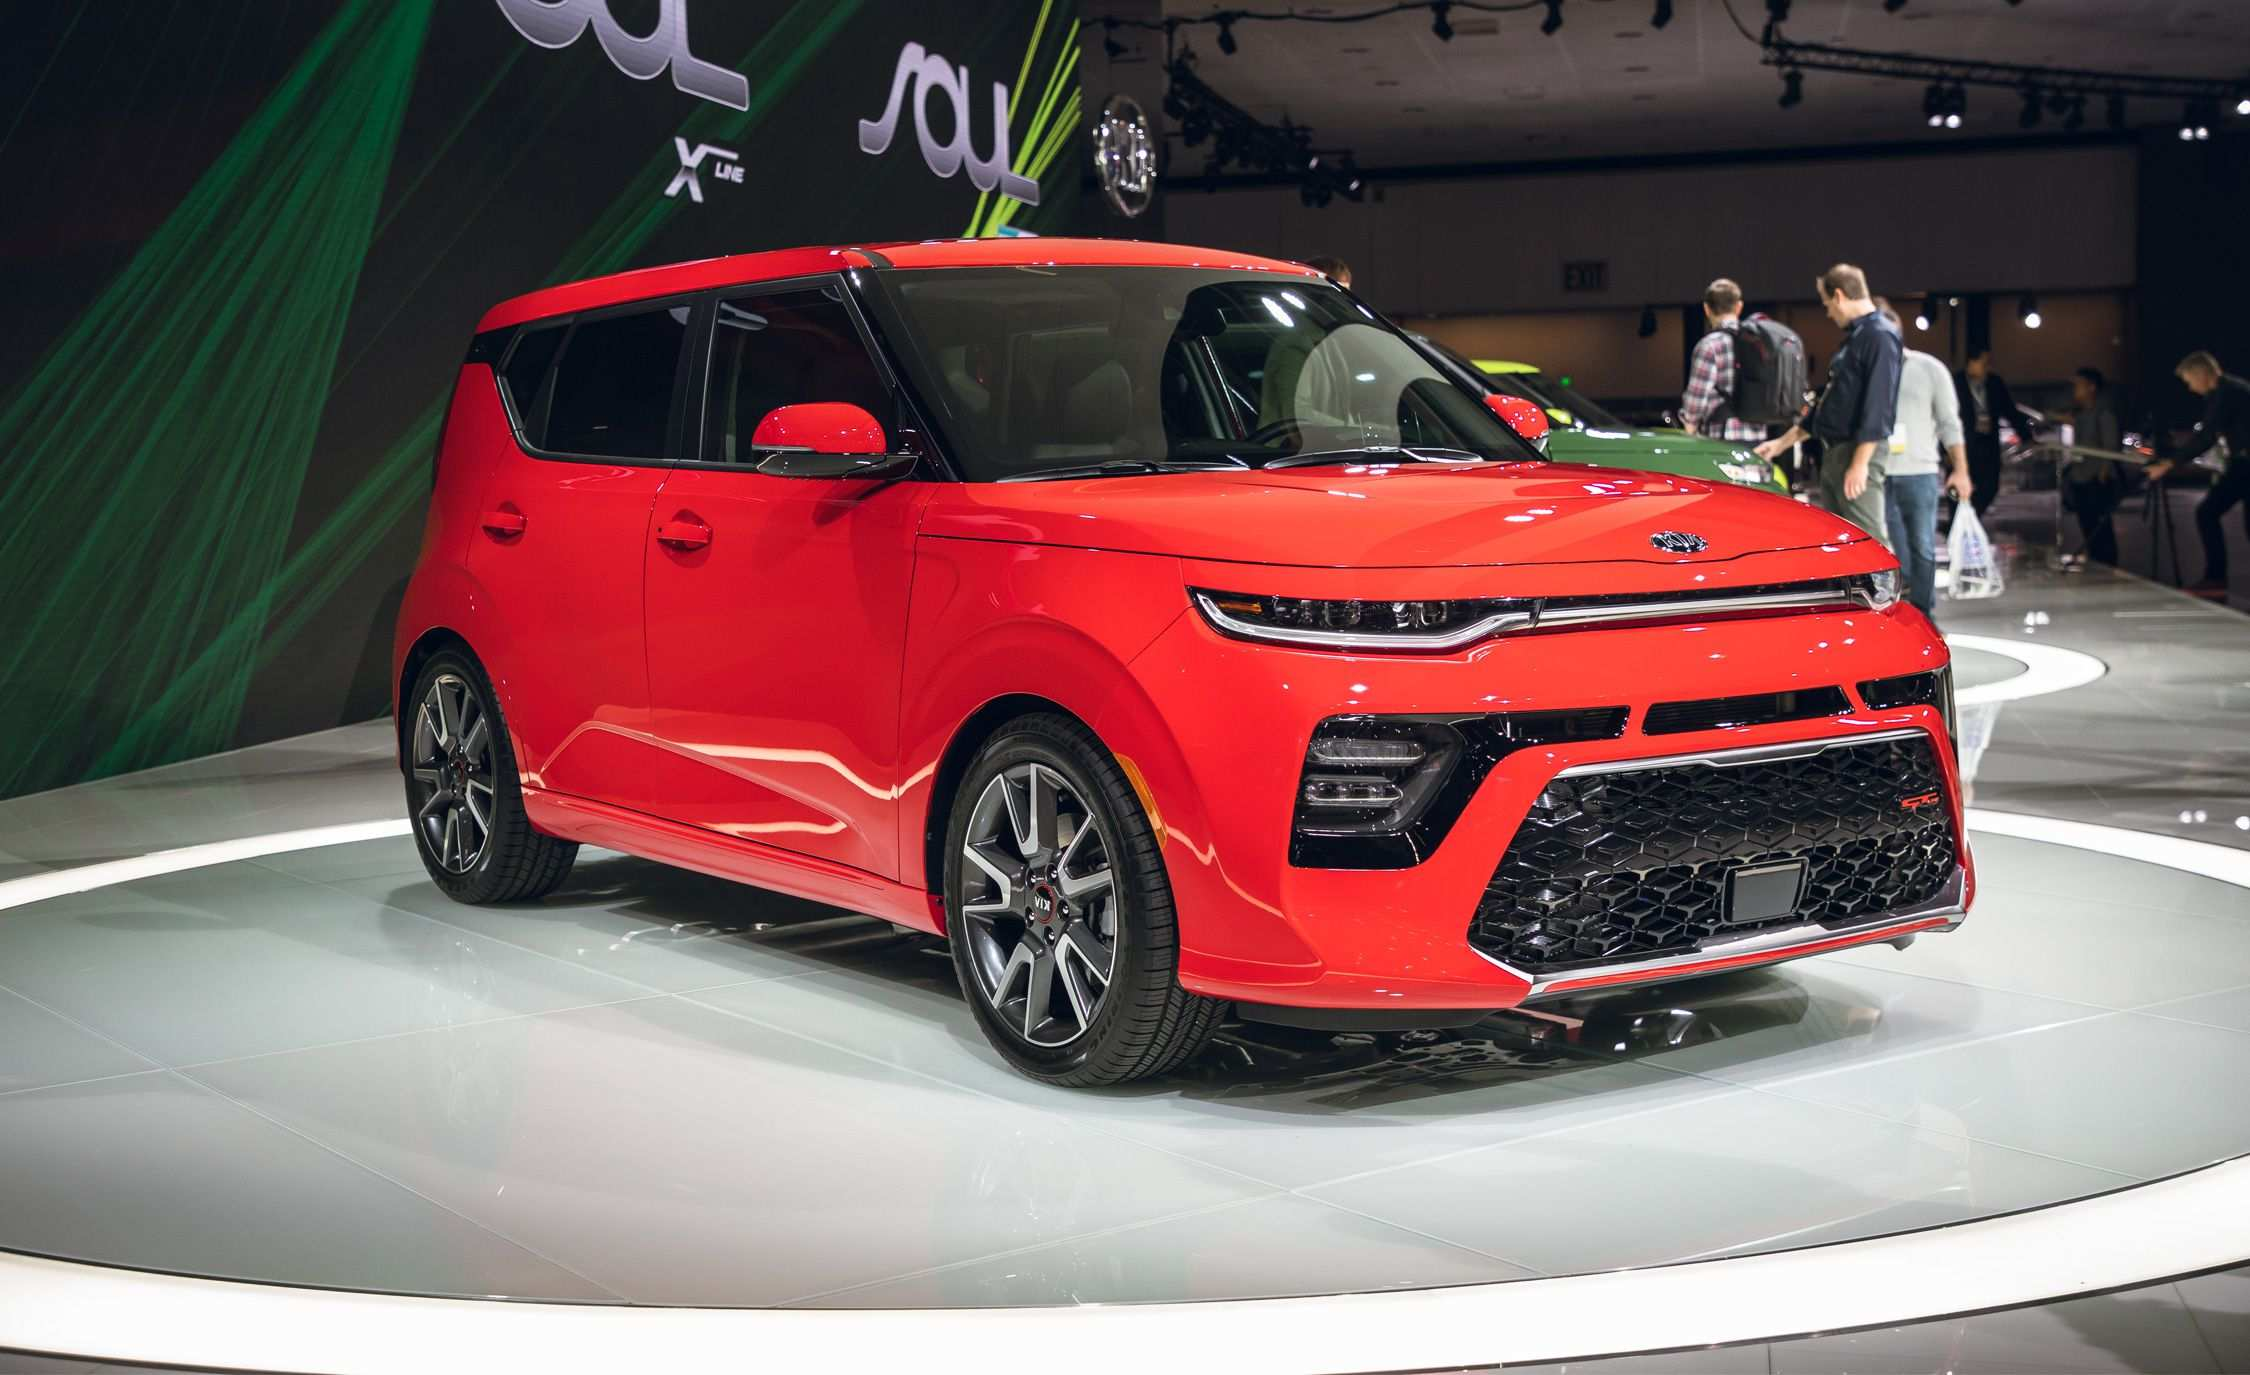 50 Concept of Kia New Truck 2020 Review with Kia New Truck 2020